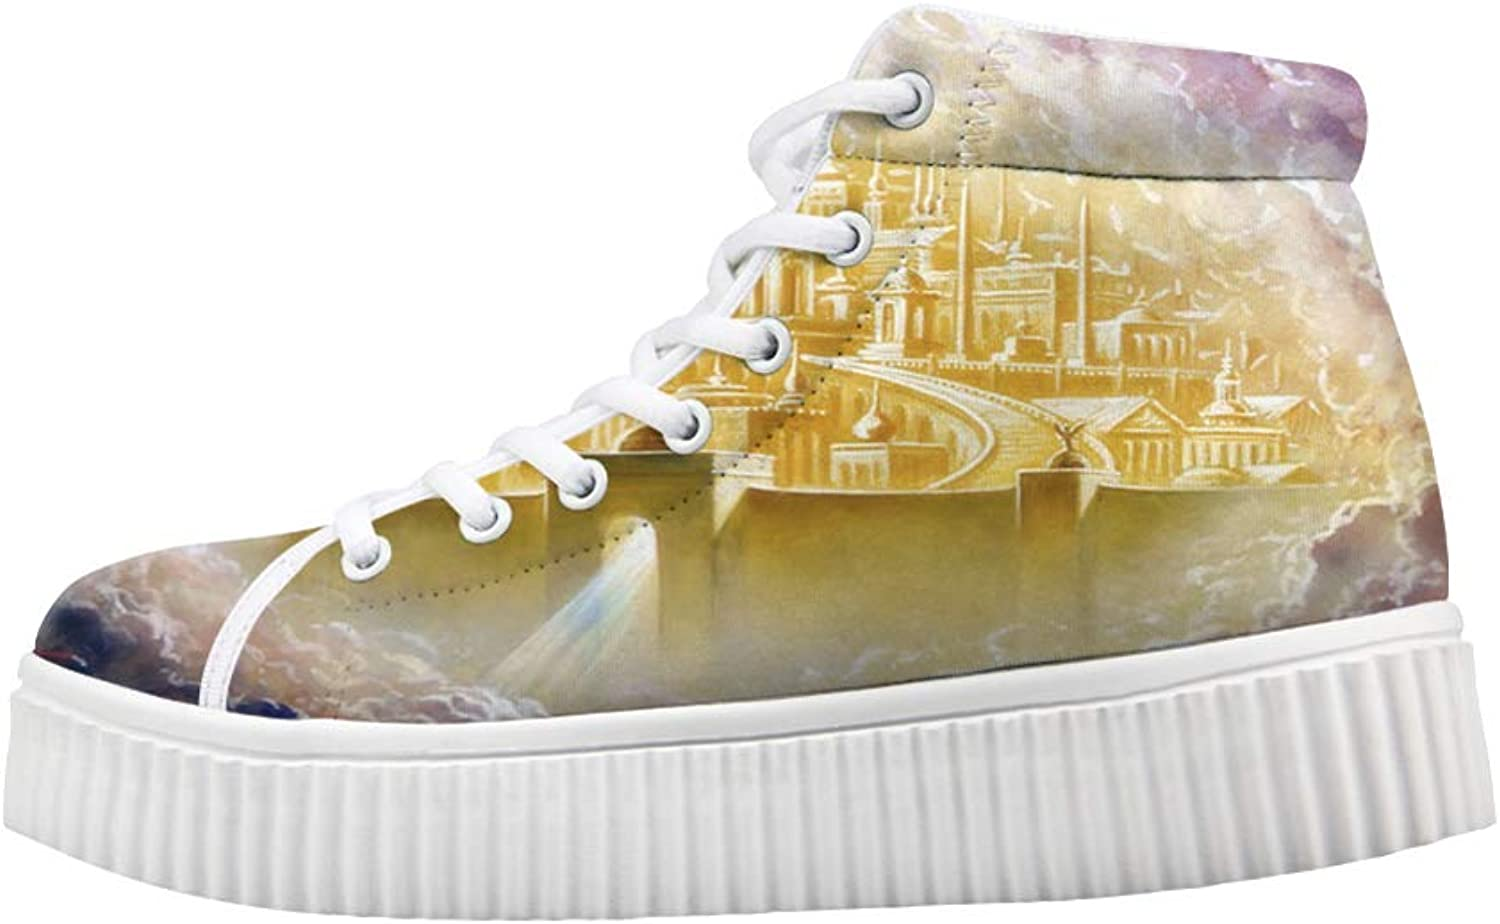 Owaheson Platform Lace up Sneaker Casual Chunky Walking shoes Women Heaven gold Holy City Jerusalem